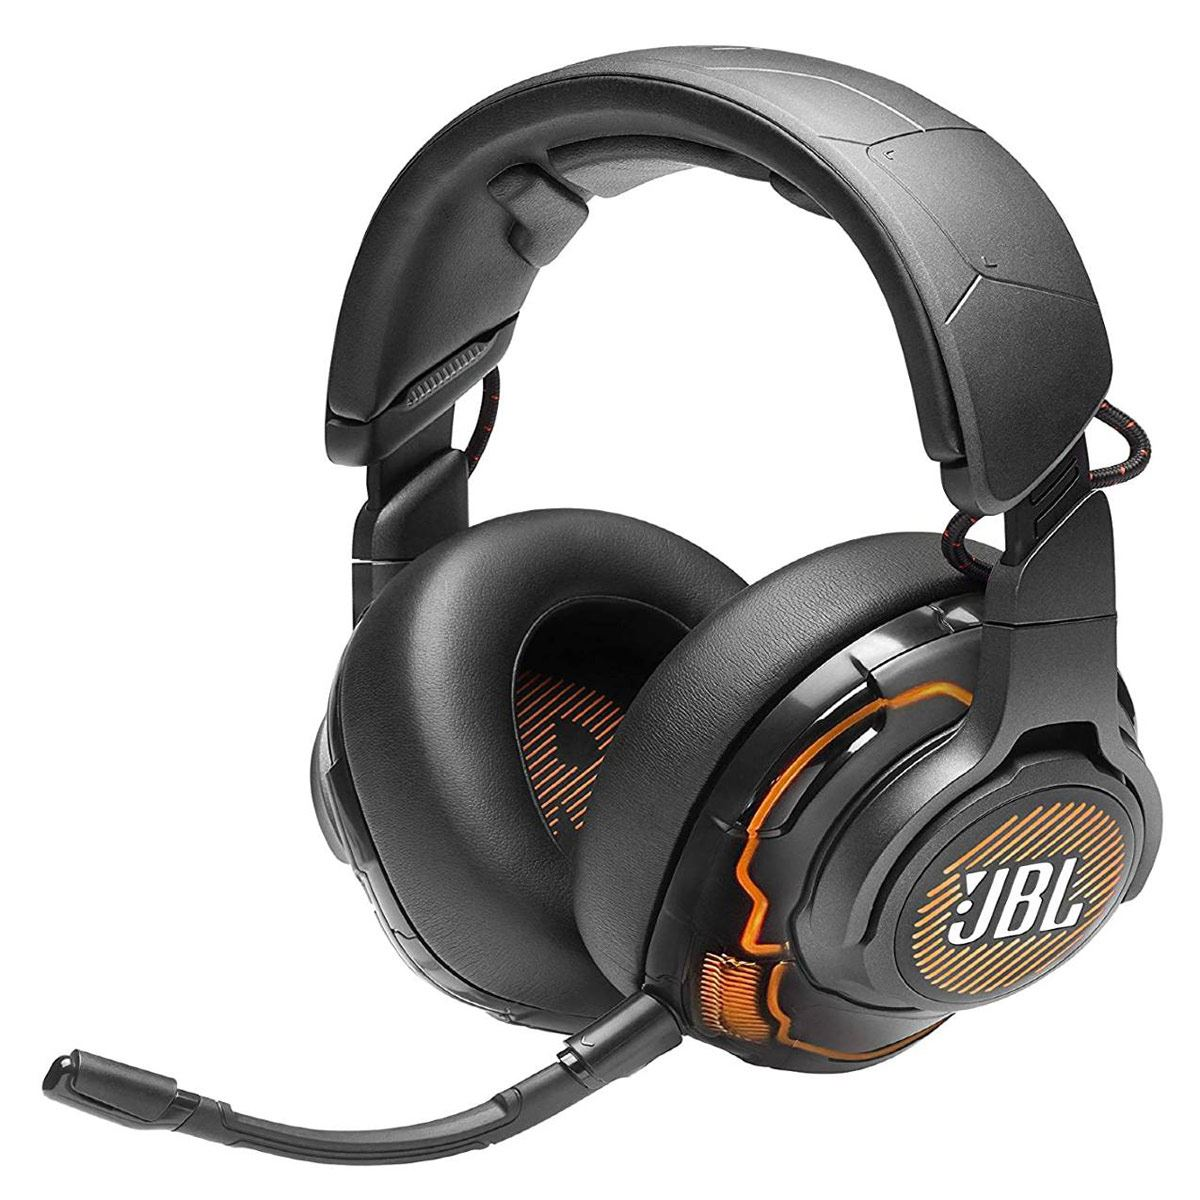 Audífonos JBL Quantum One USB Gaming Profesional Headset Sphere 360